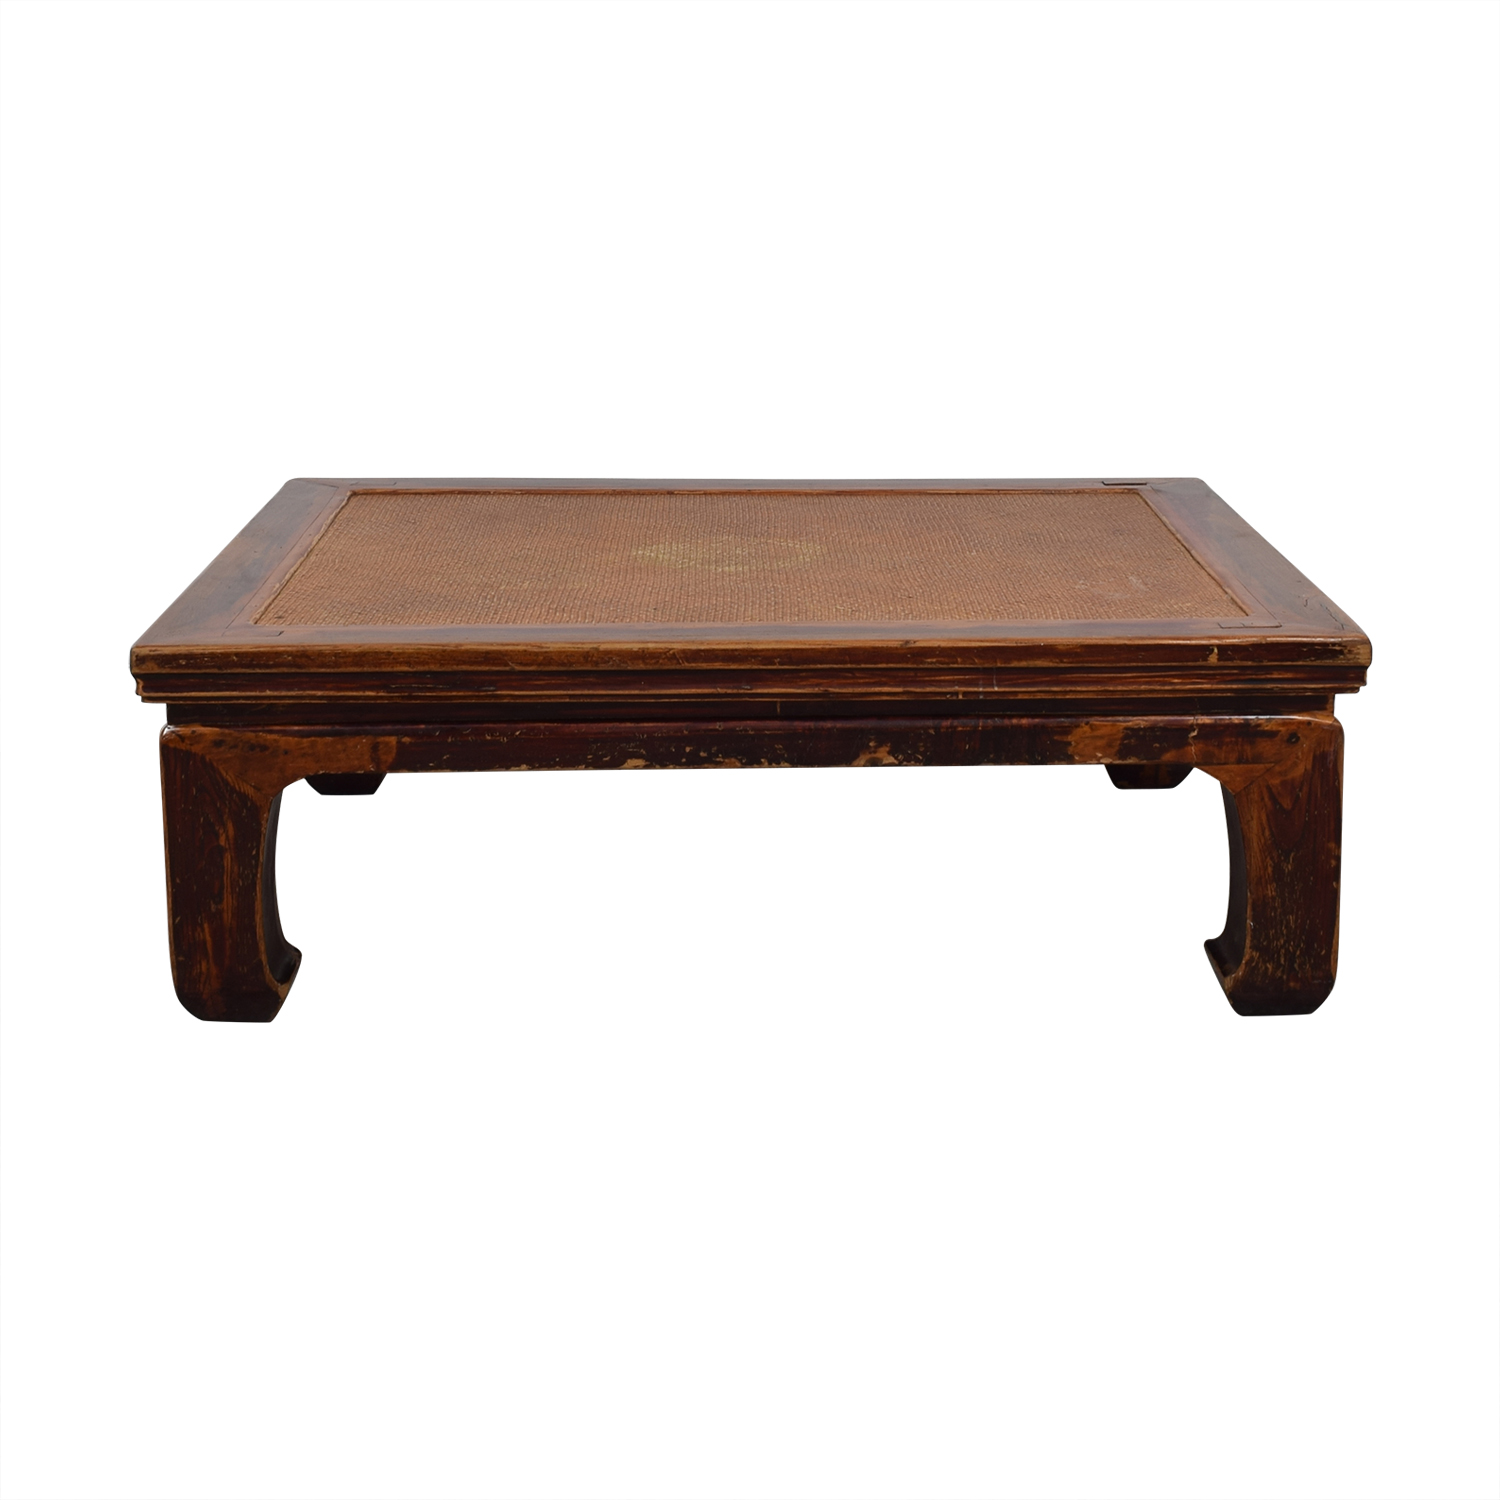 Admirable 86 Off Antique 19Th Century Korean Rosewood Low Coffee Table Tables Pdpeps Interior Chair Design Pdpepsorg